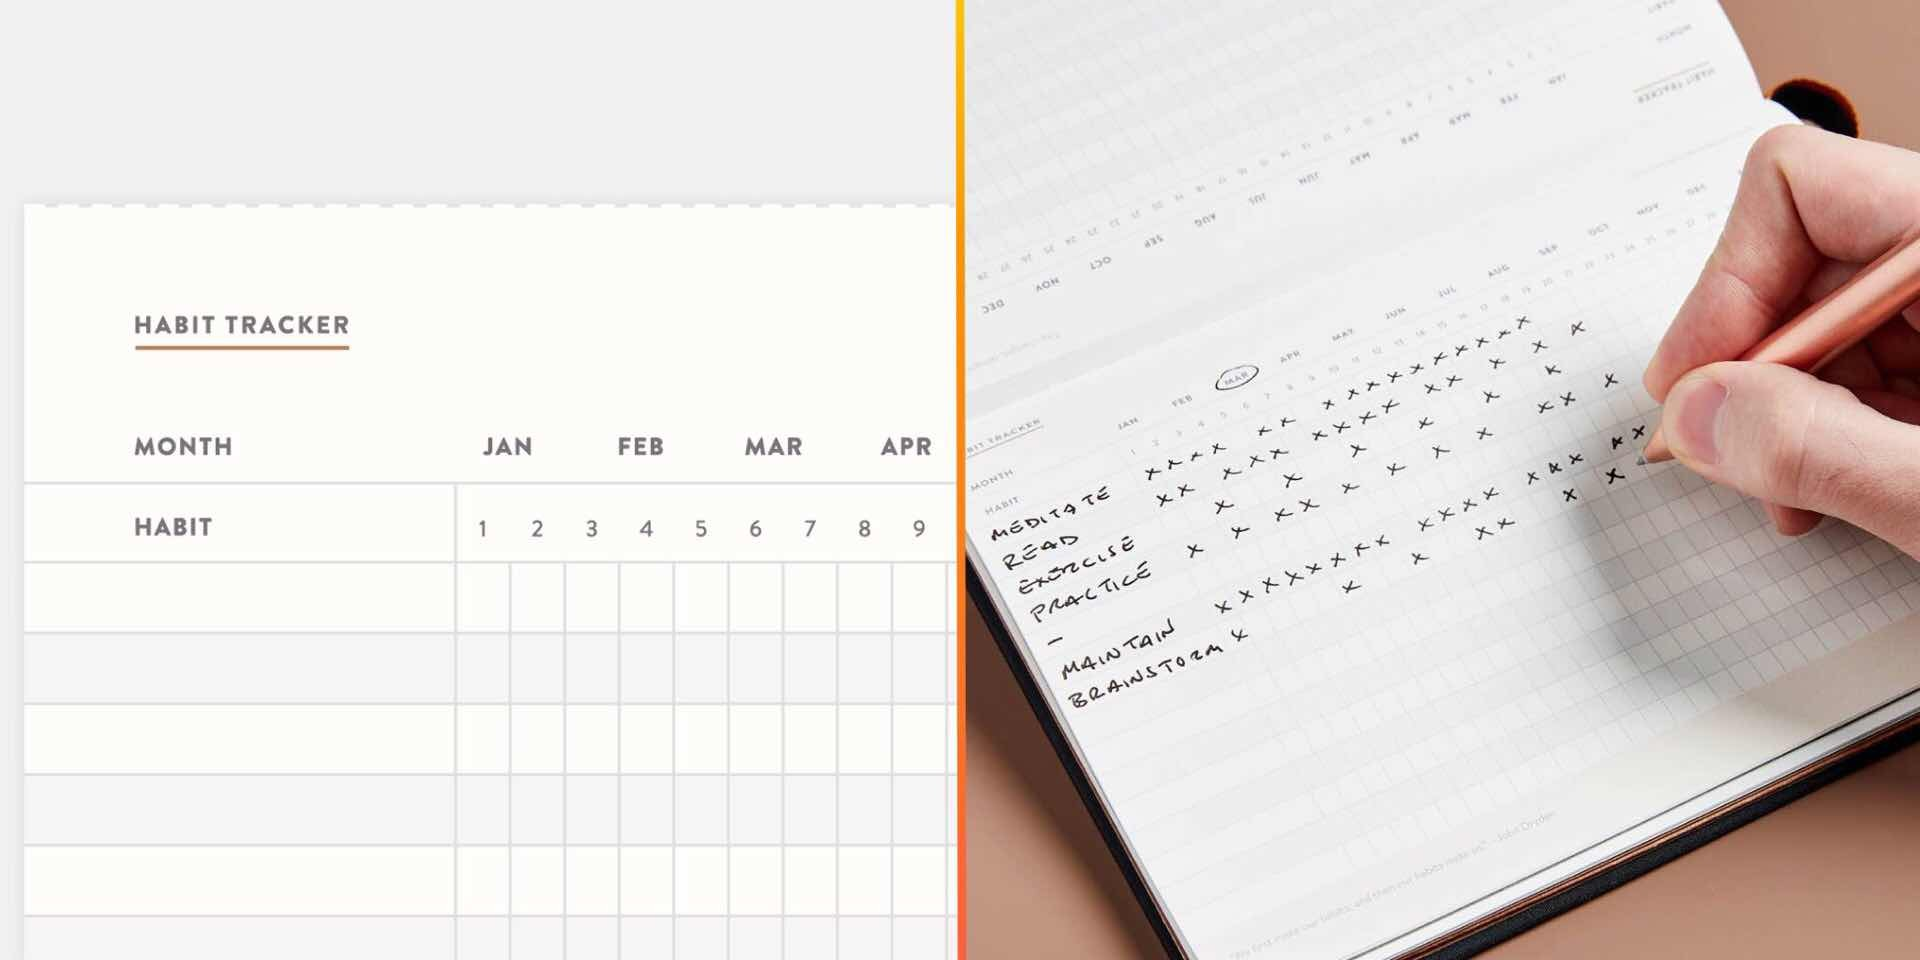 baron-fig-clear-habit-journal-habit-tracker